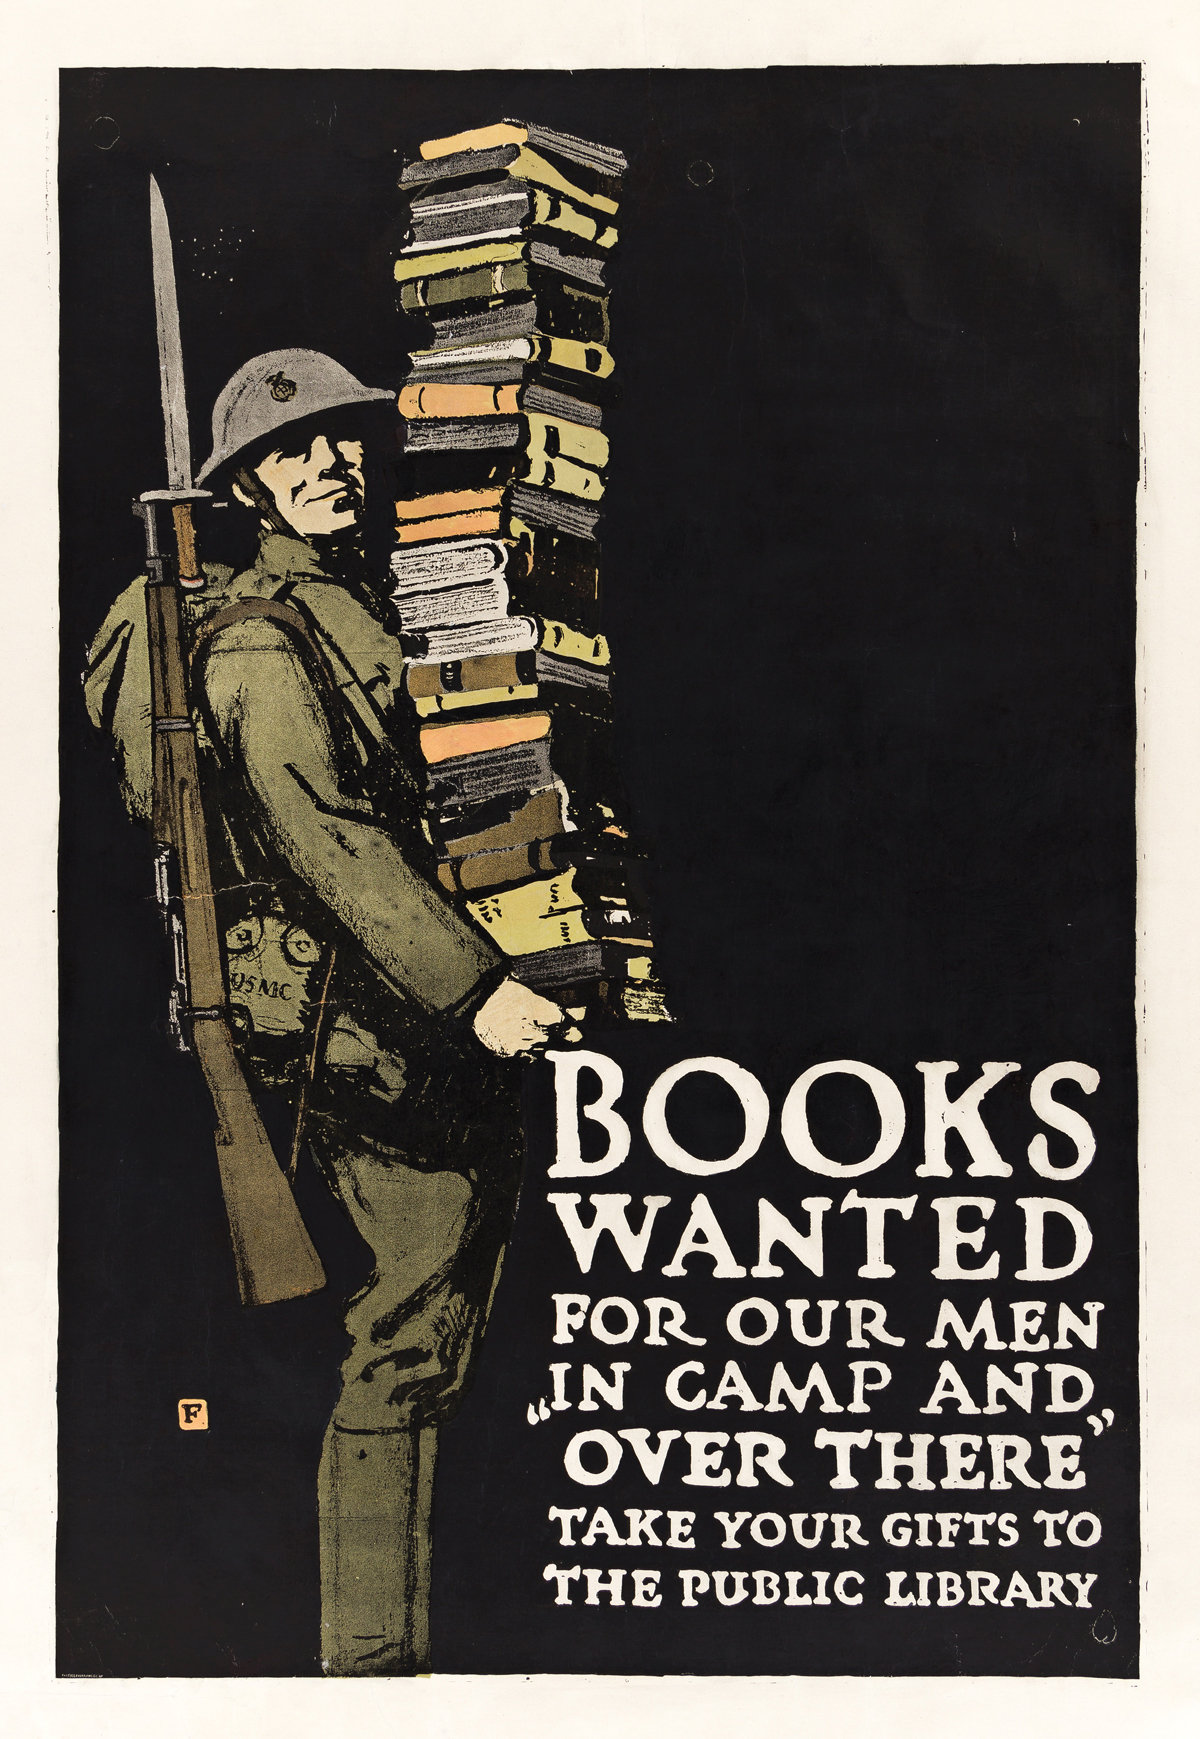 CHARLES BUCKLES FALLS (1874-1960).  BOOKS WANTED FOR OUR MEN IN CAMP AND OVER THERE. Circa 1918. 41¼x28 inches, 104¾x71 cm. The Gill